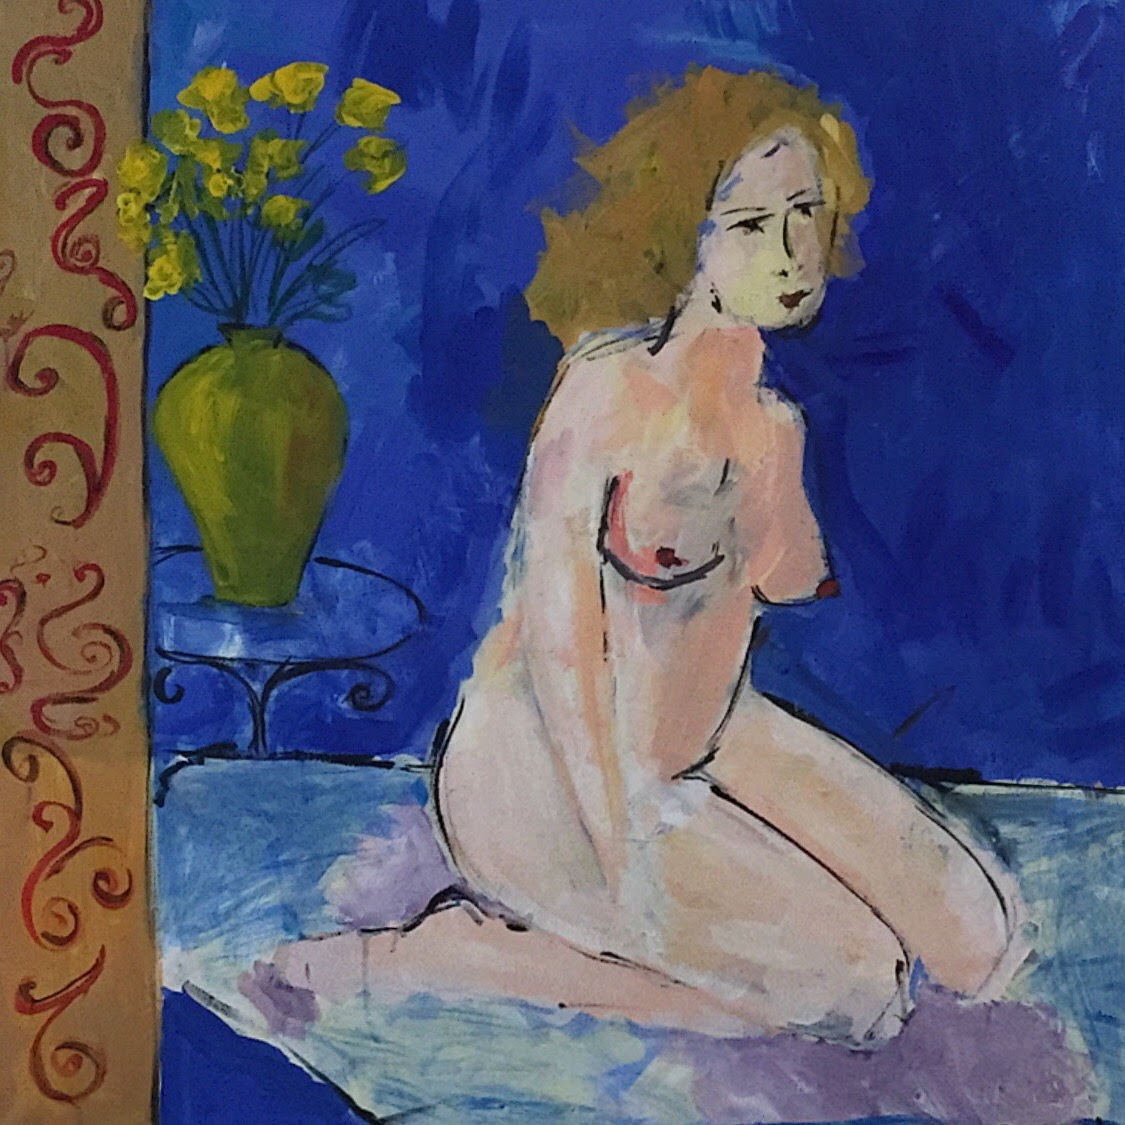 29. Nude with flowers